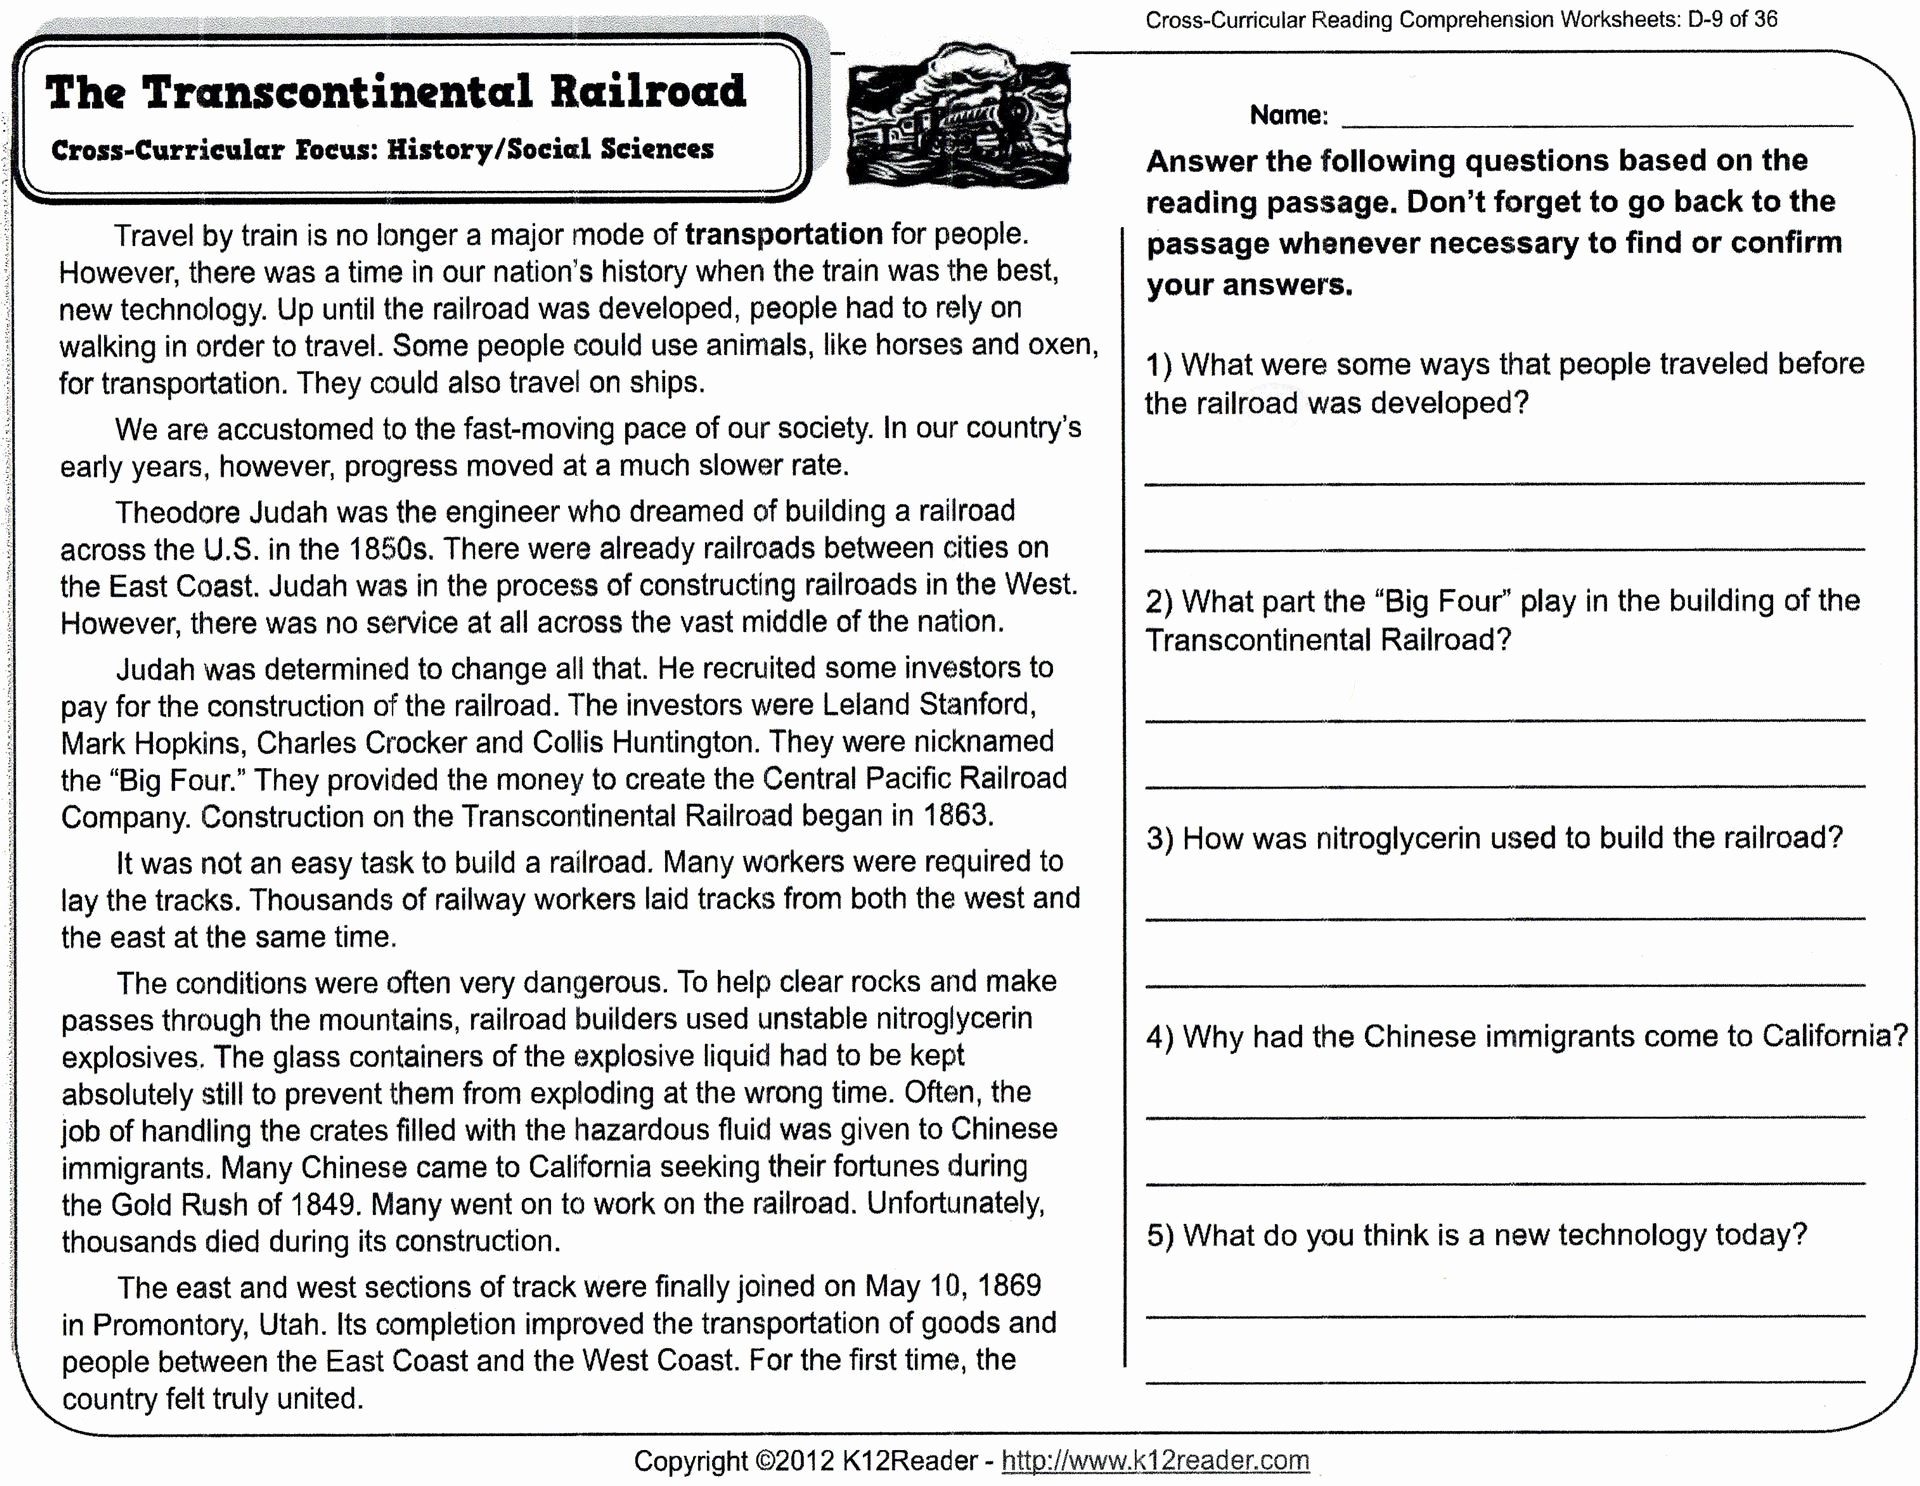 Reading Comprehension Worksheets For 8Th Grade Free Report Templates - Free Printable Reading Comprehension Worksheets